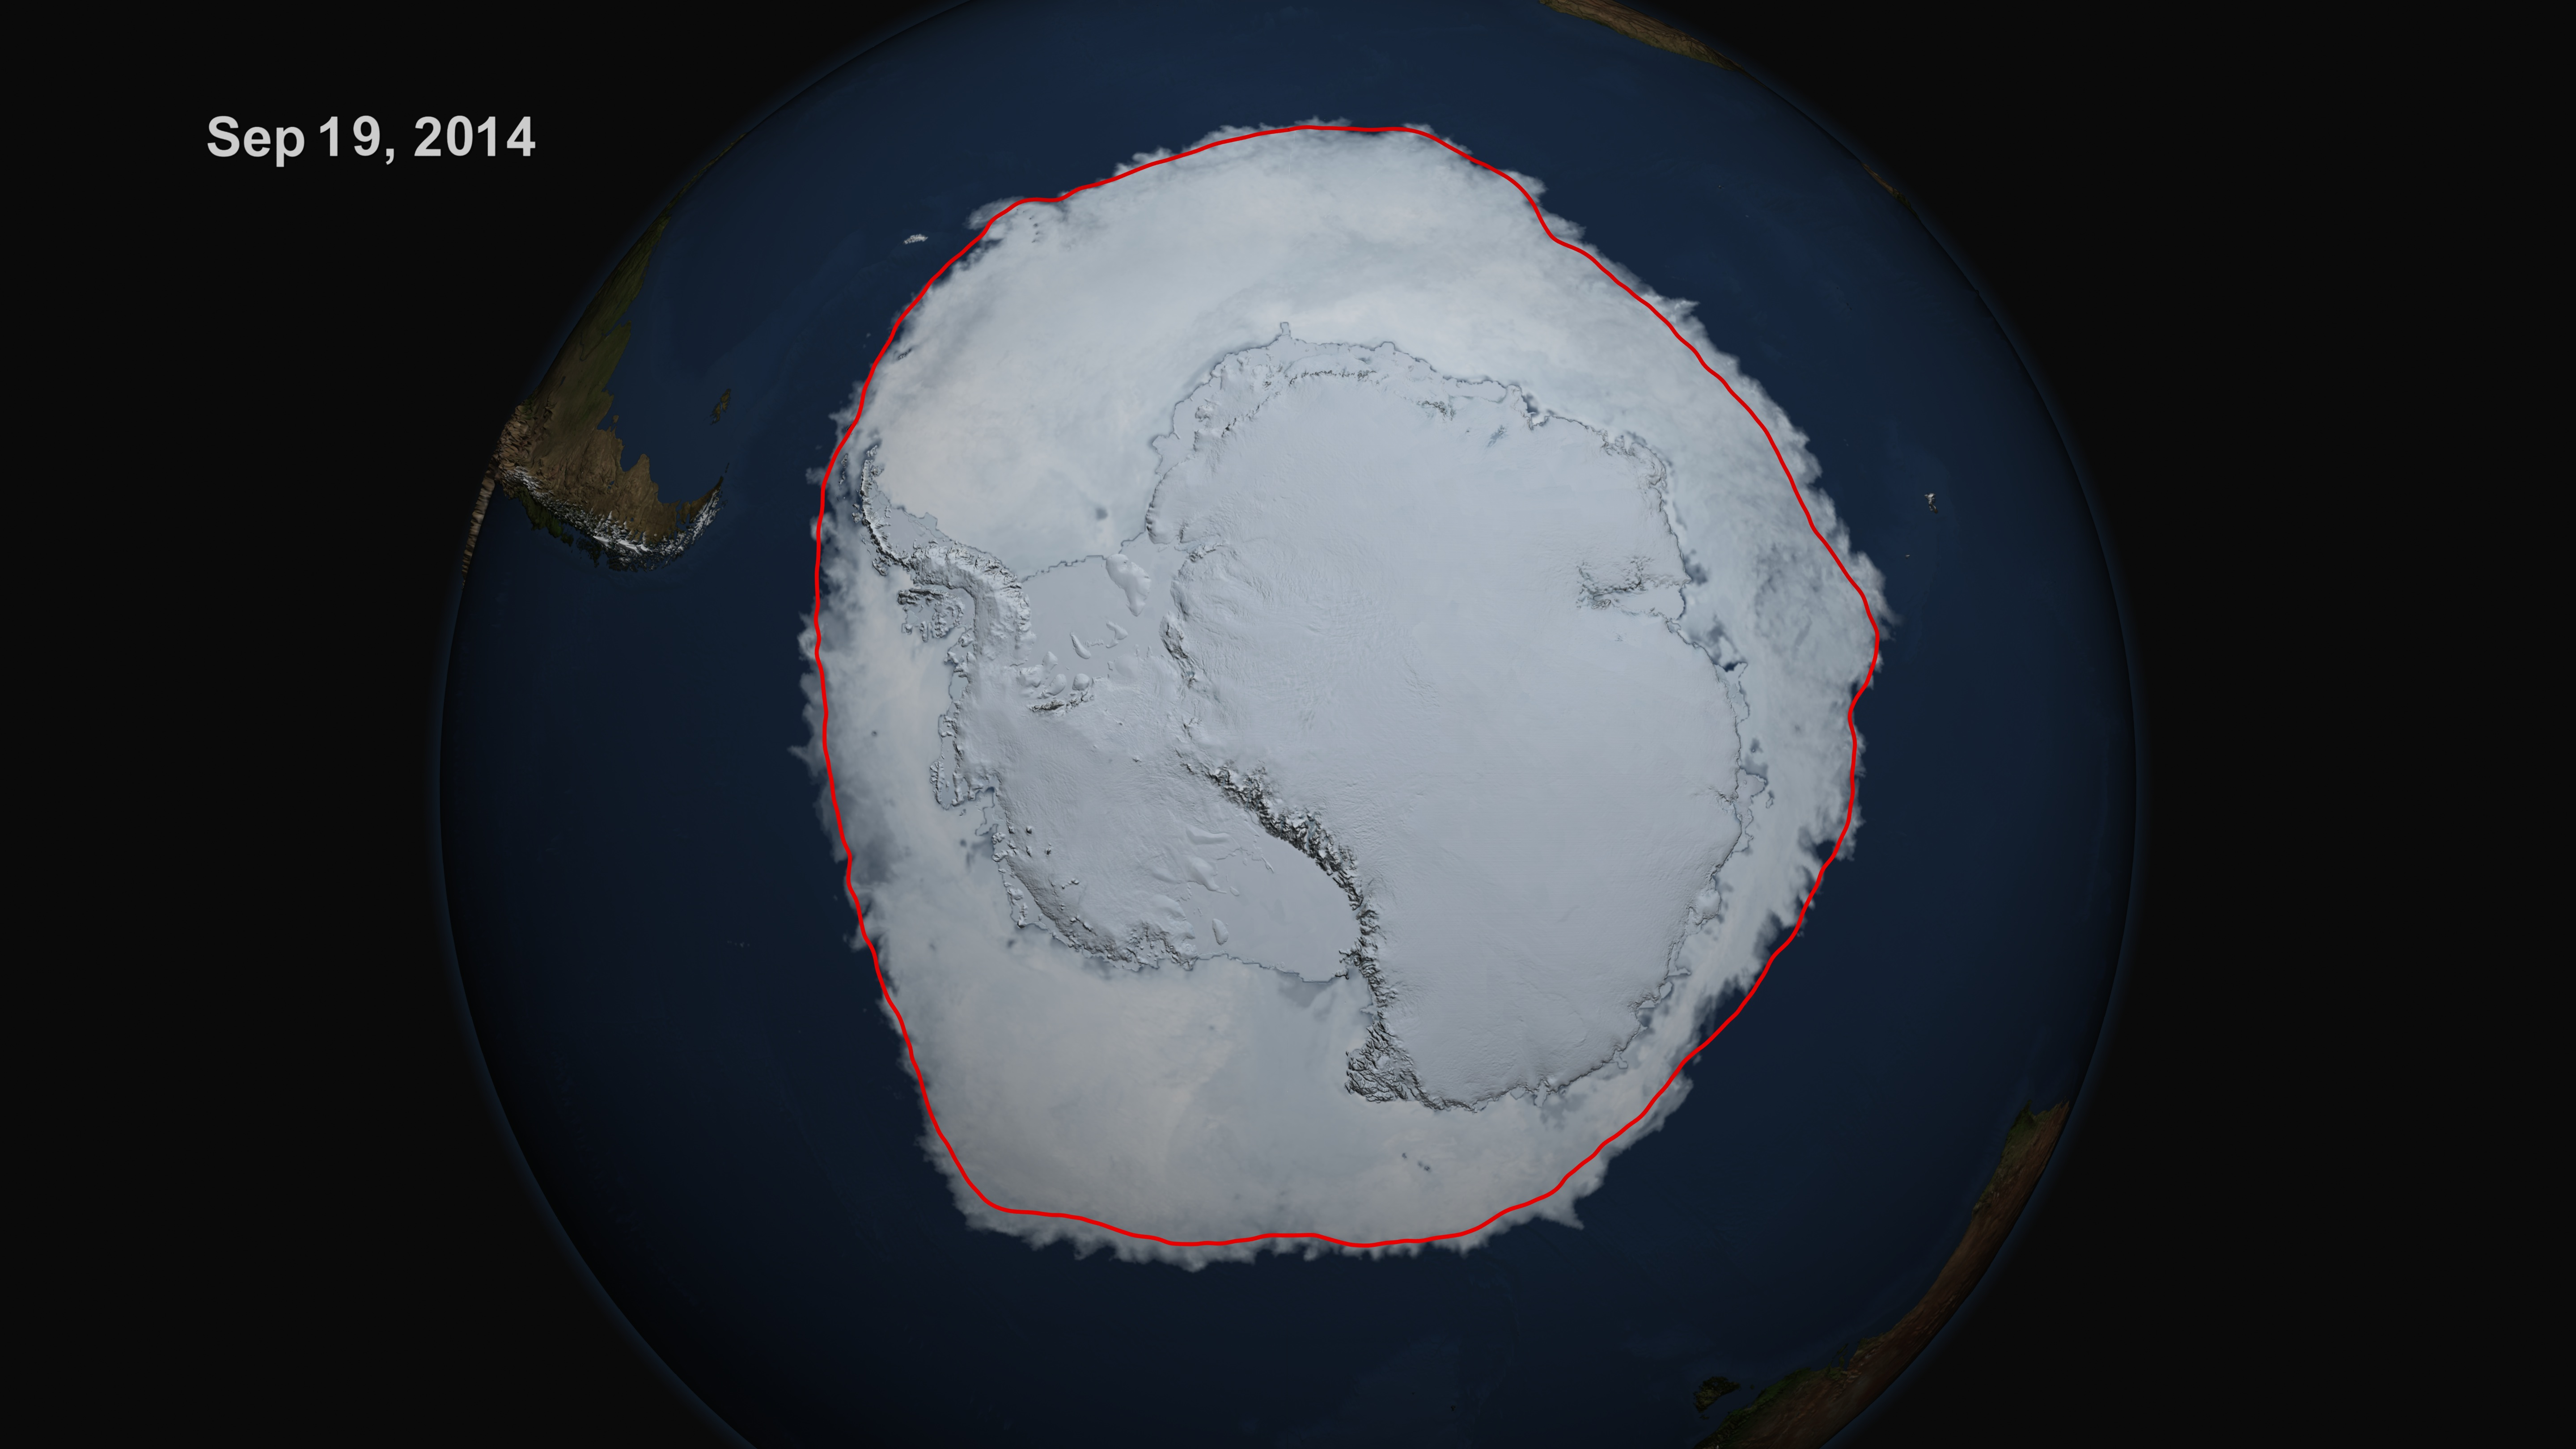 studies show melting of the polar ice caps is caused by global warming Specifically, that man-made global warming is the root cause of other supposedly unnatural polar ice cap events such as alteration of marine and land animal migration patterns, anomalous plankton blooms, chemical alteration of adjacent ocean waters, alteration of polar area ocean currents, and changes in meteorological patterns.